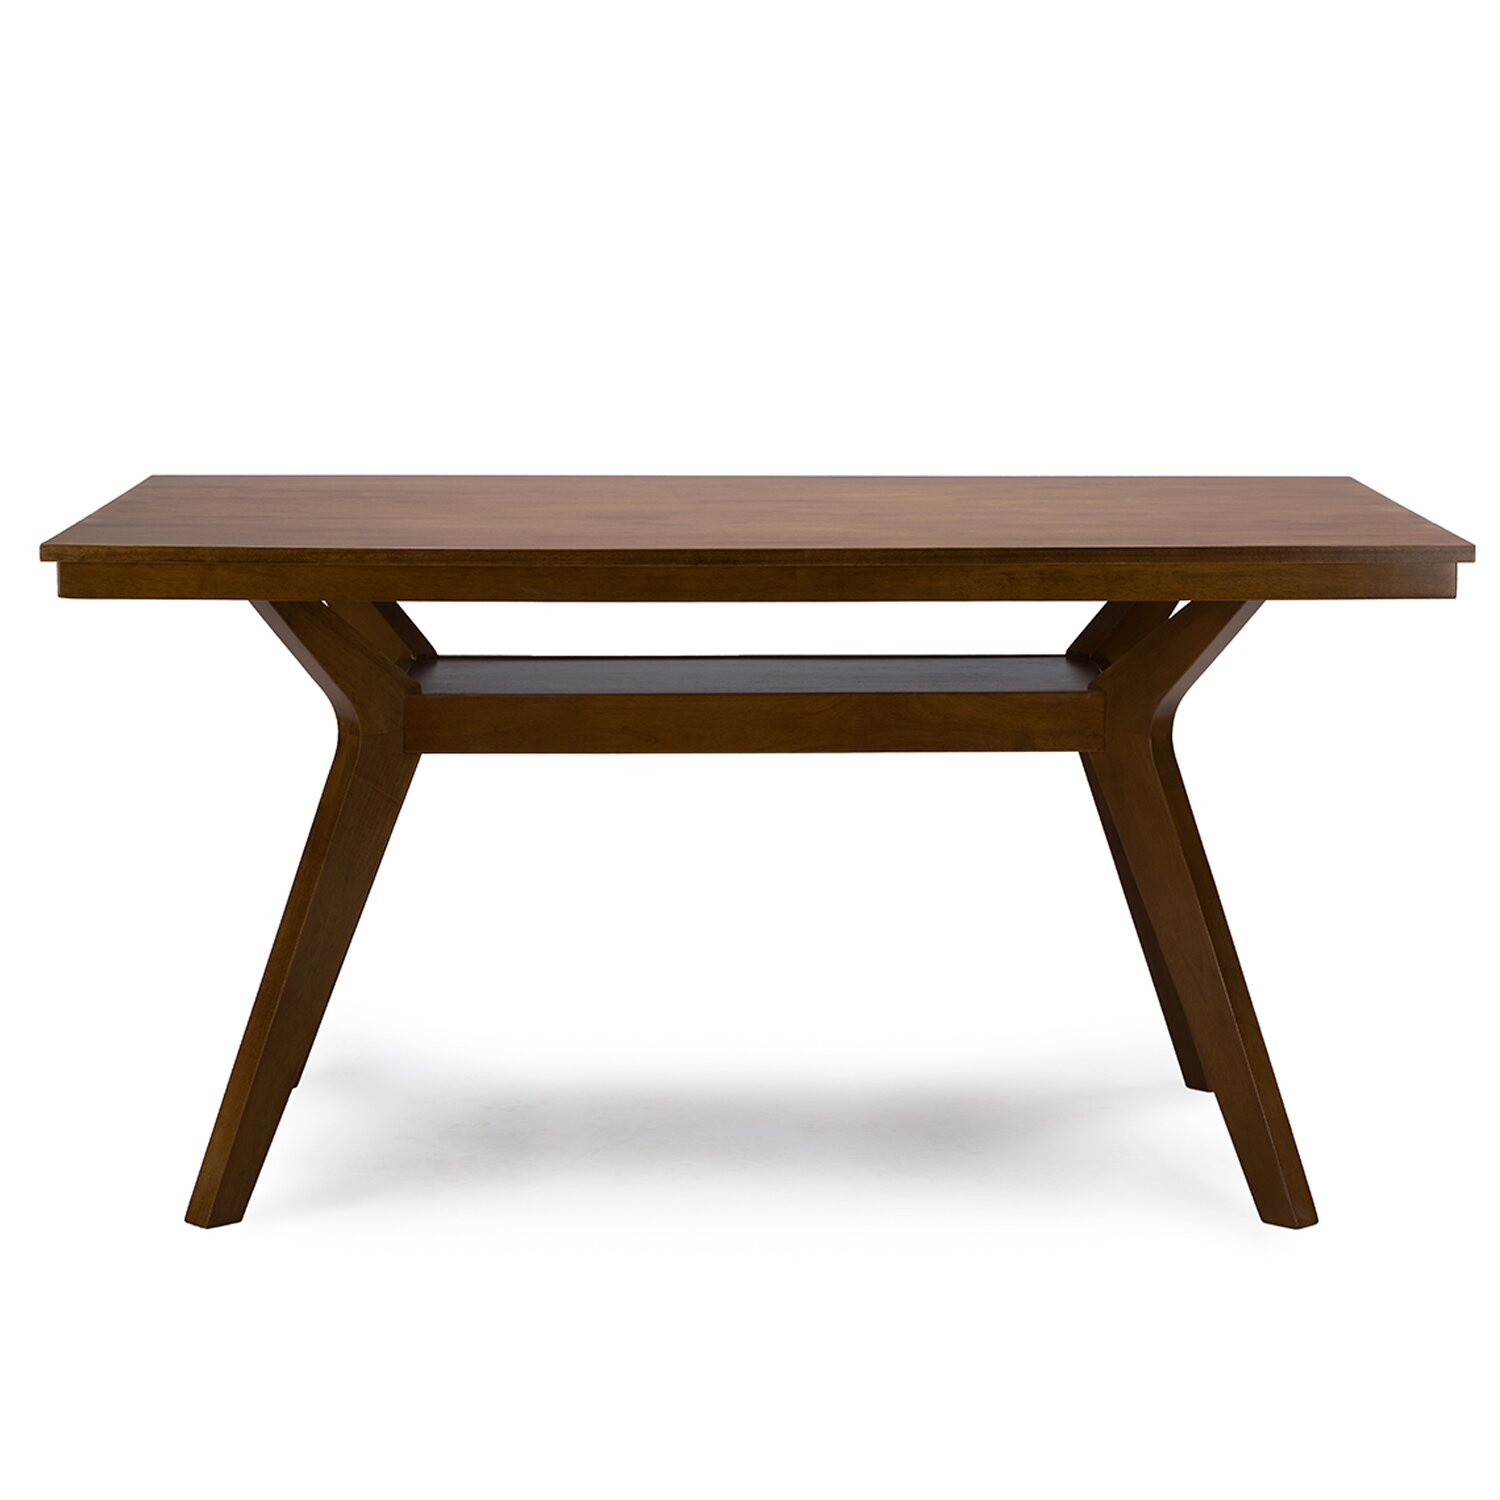 Odyssey dining table reviews allmodern for Regulation 85 table a